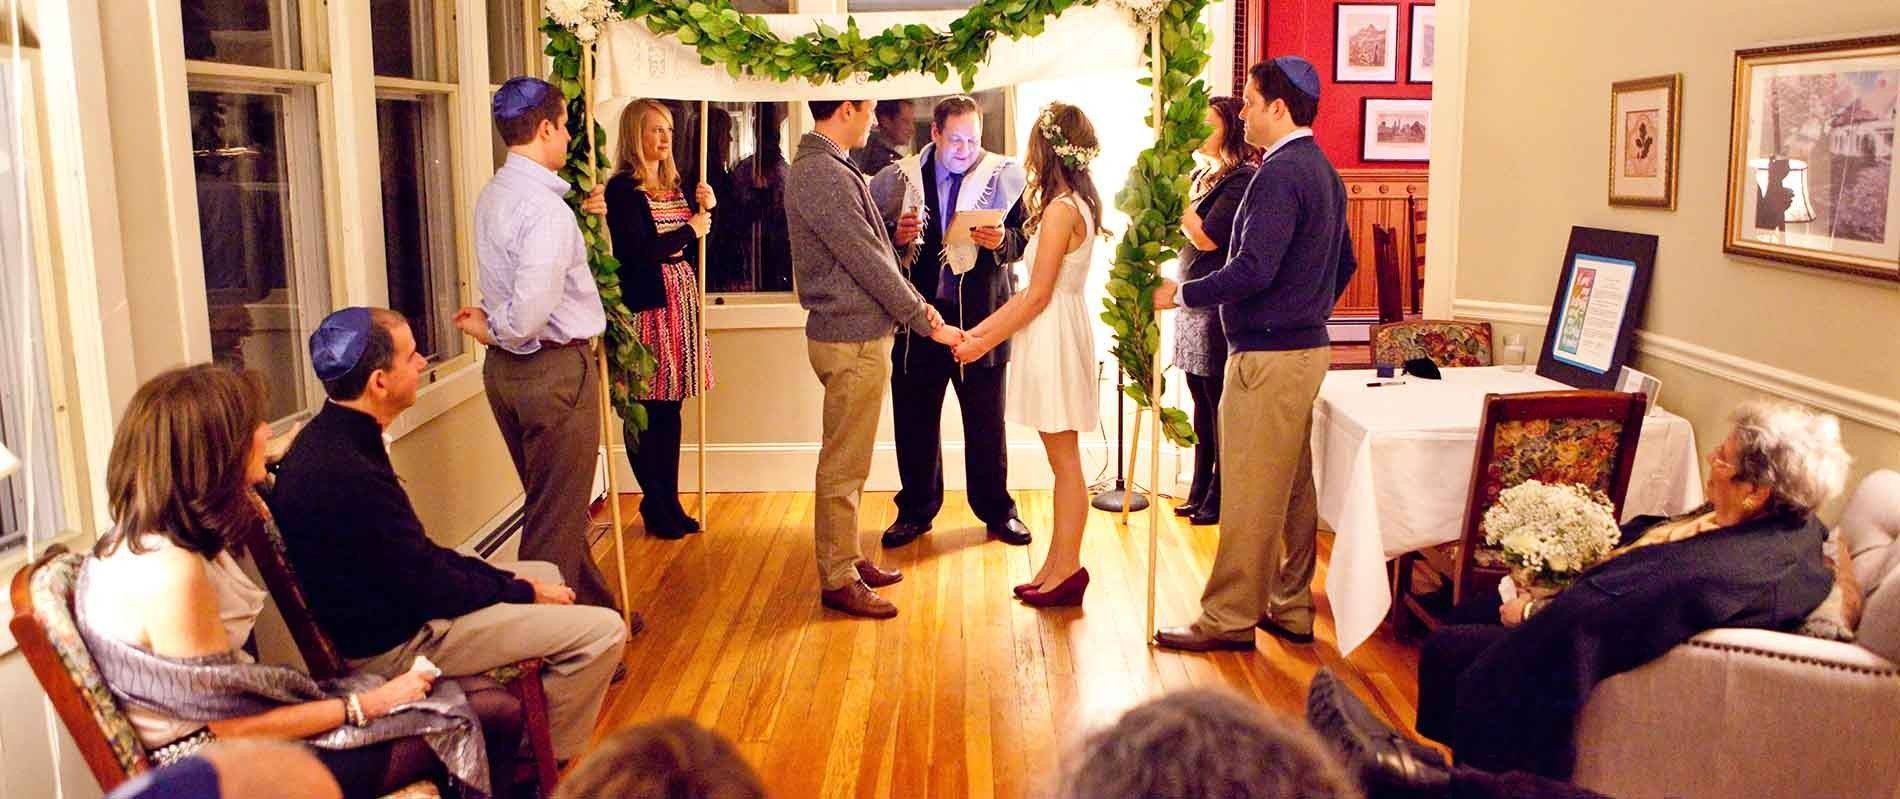 We Offer A Magical Burlington Vermont Wedding Venue That Is Small Intimate Perfect Come Tour The Property Or See Elopement Photos Here